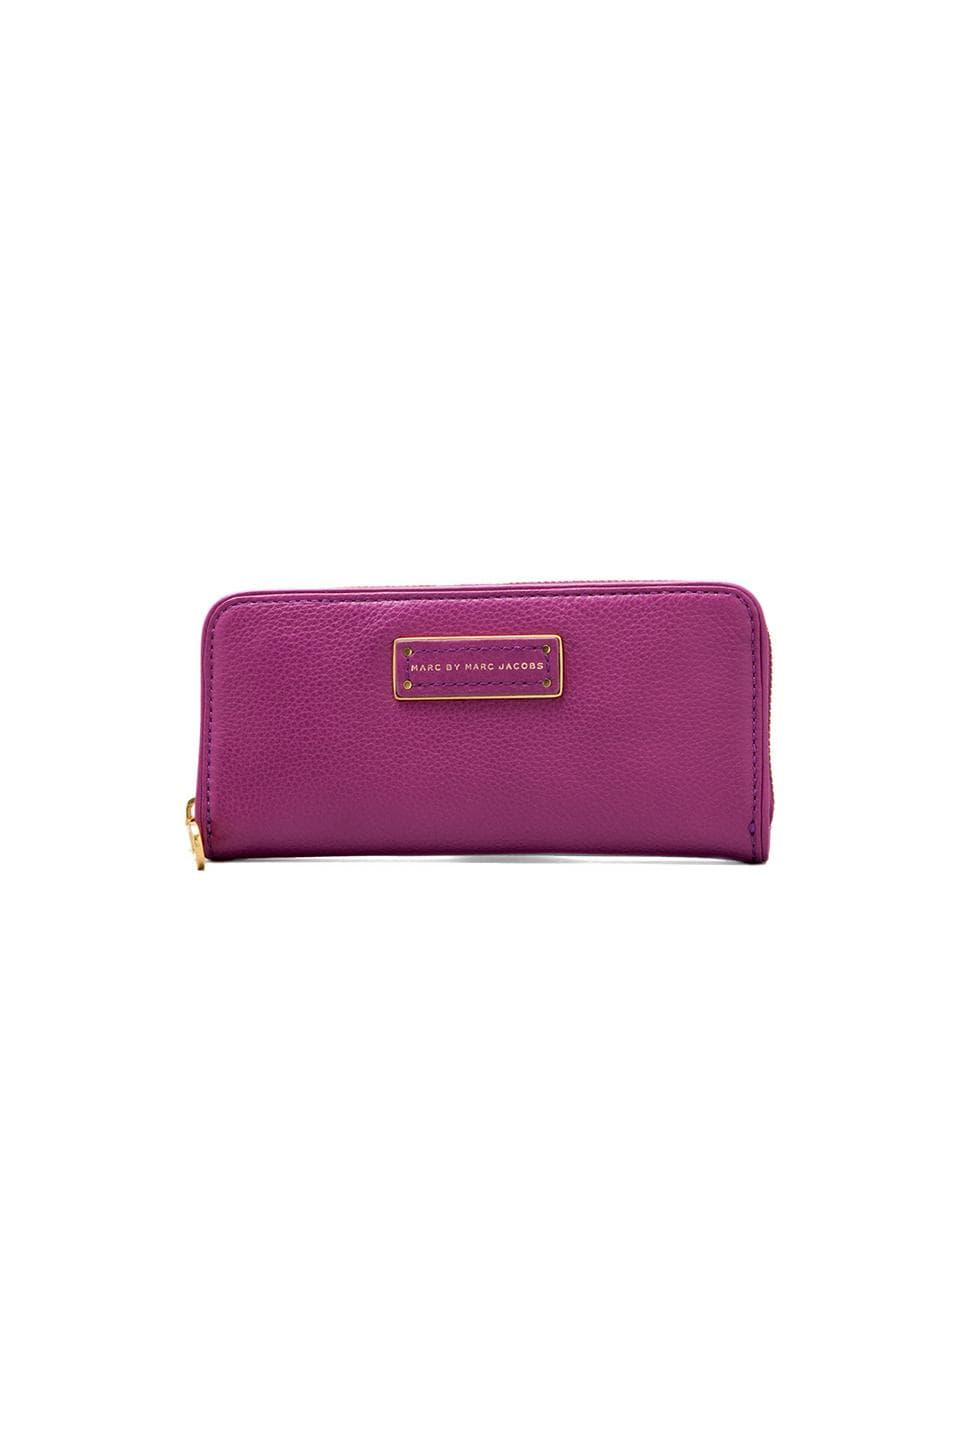 Marc by Marc Jacobs Too Hot to Handle Slim Zip Around in Brighter Purple